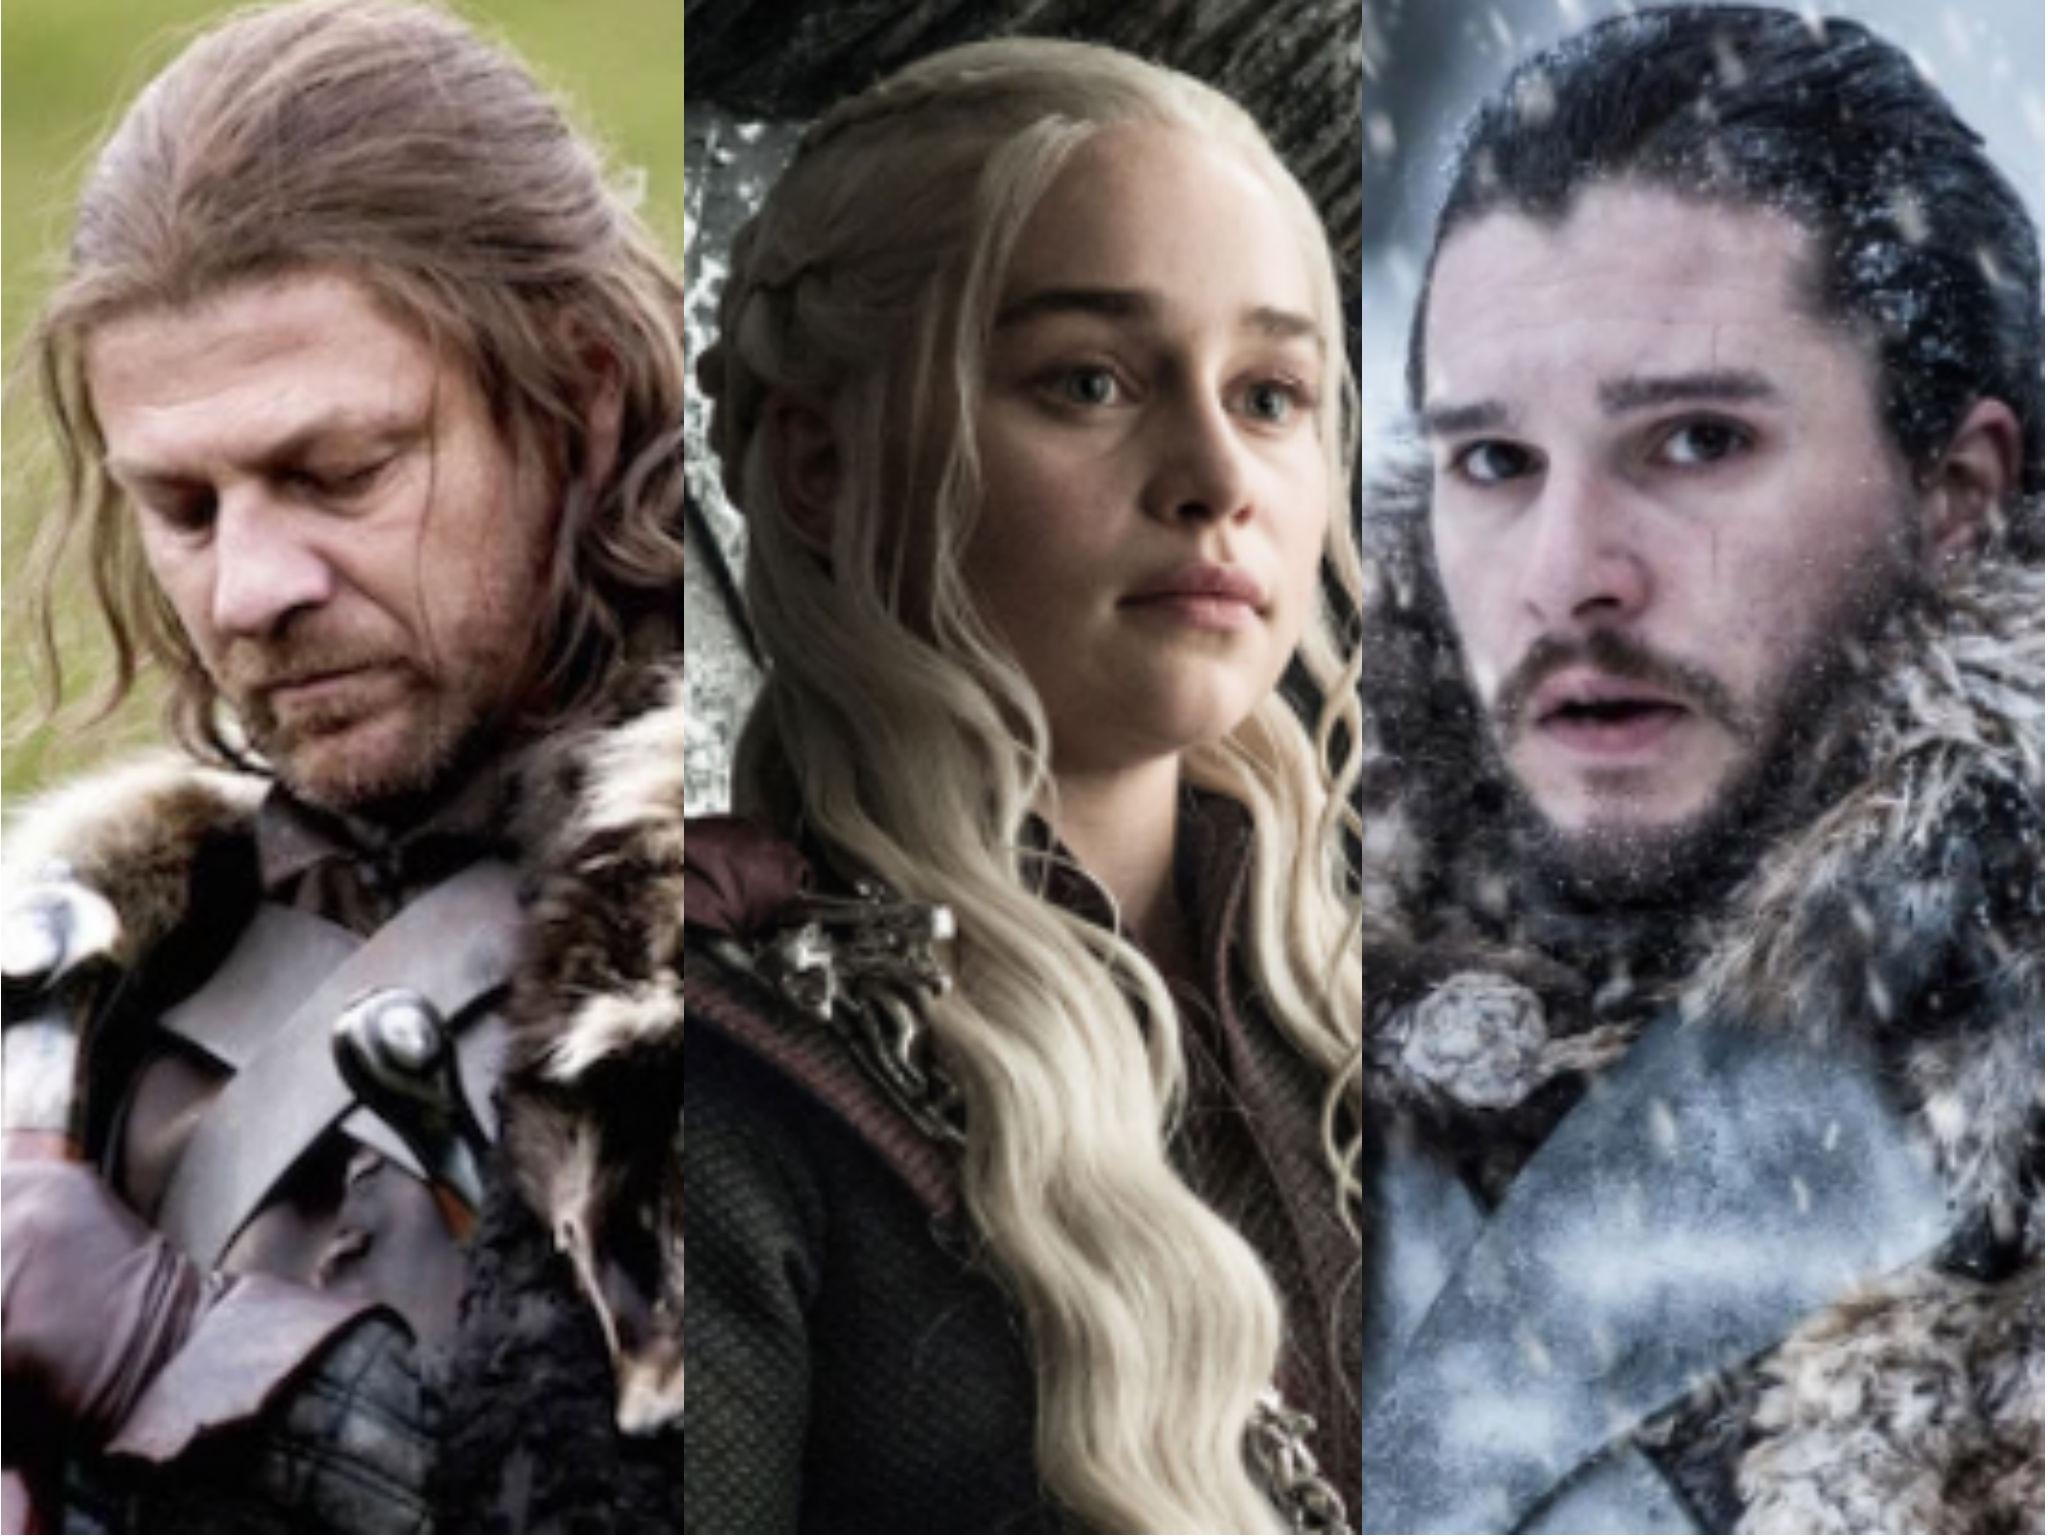 Game of Thrones family tree: How are the Starks, Targaryens and Lannisters related?